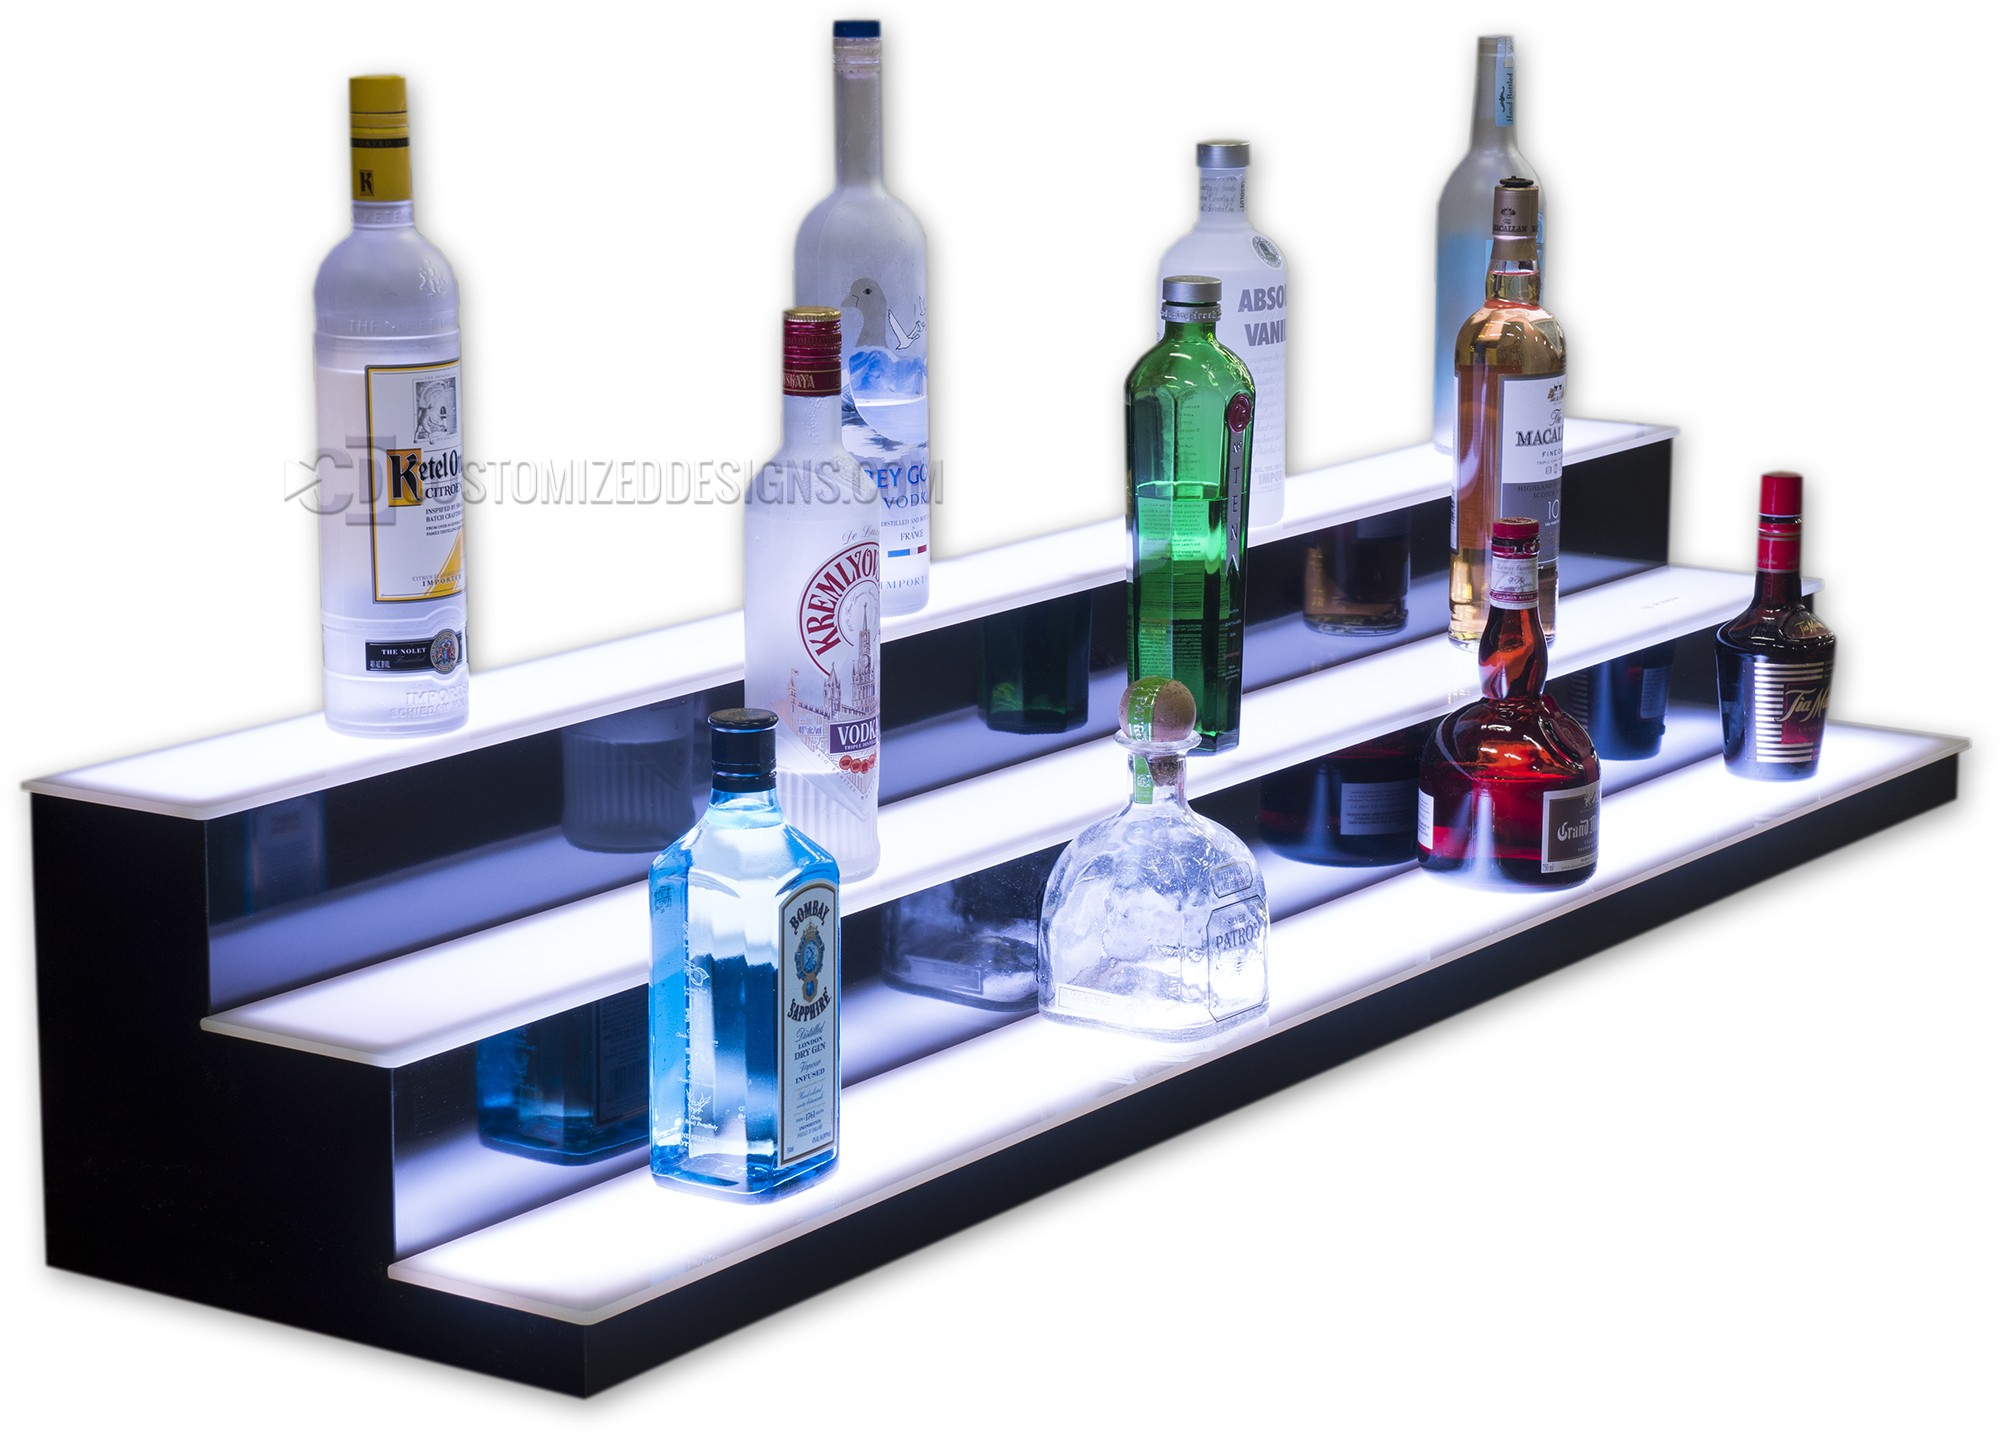 3 Tier LED Lighted Bar Shelving